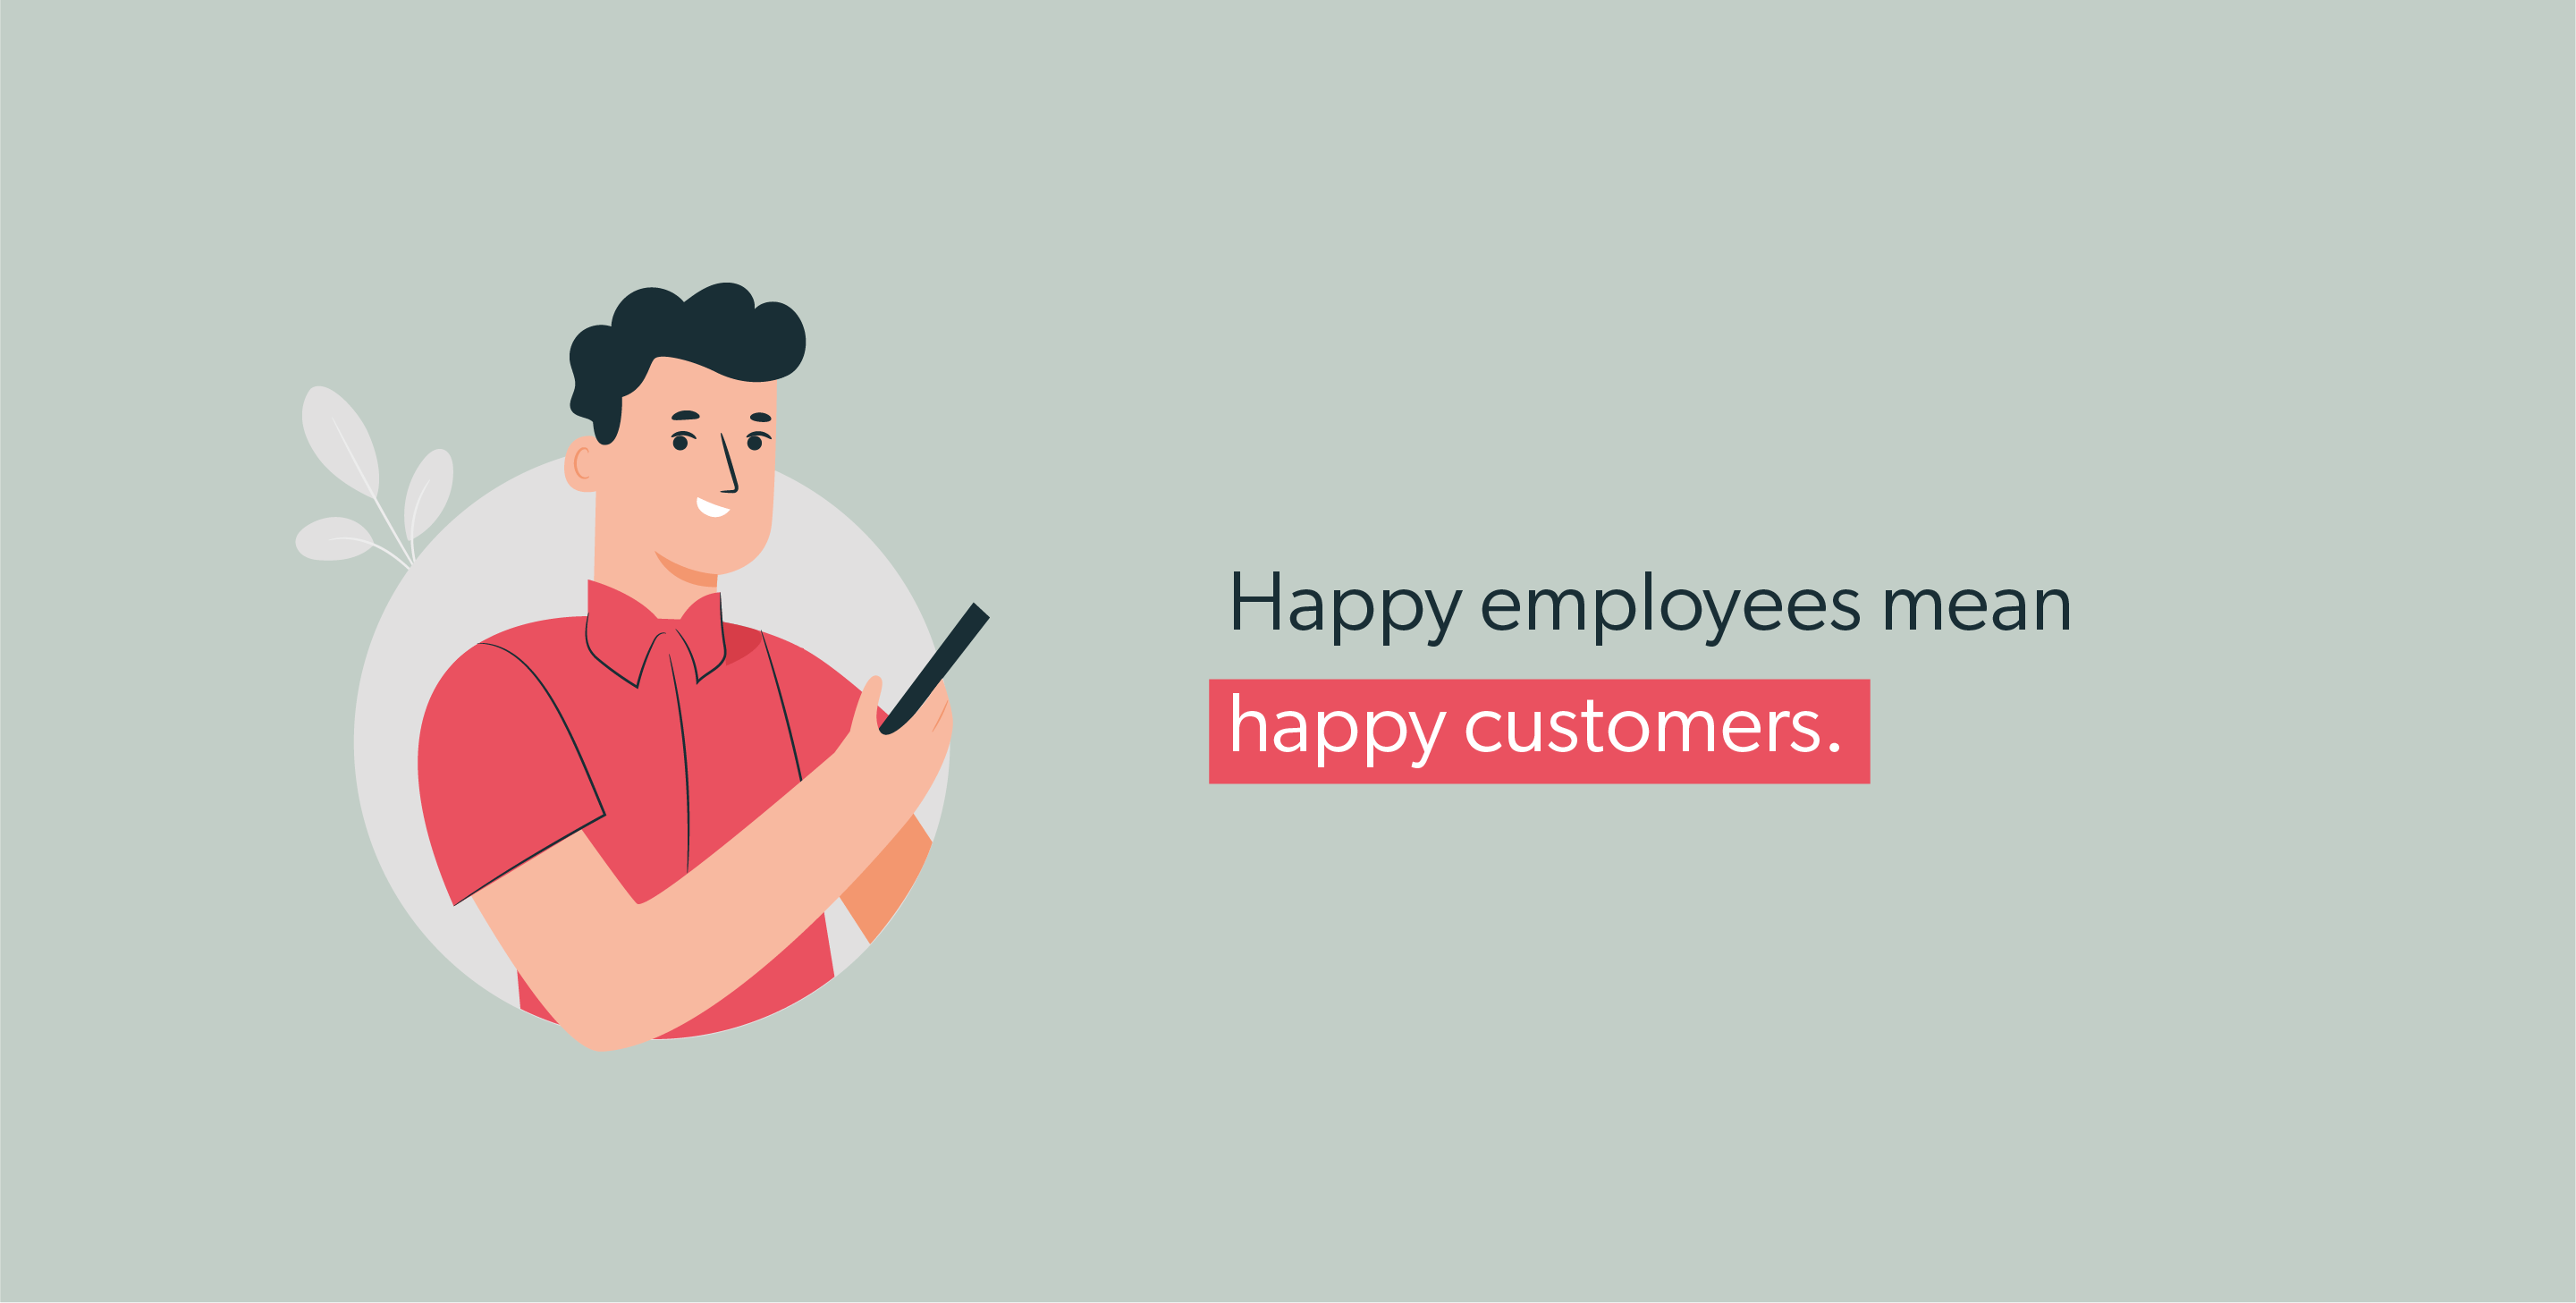 Happy employees mean happy customers.